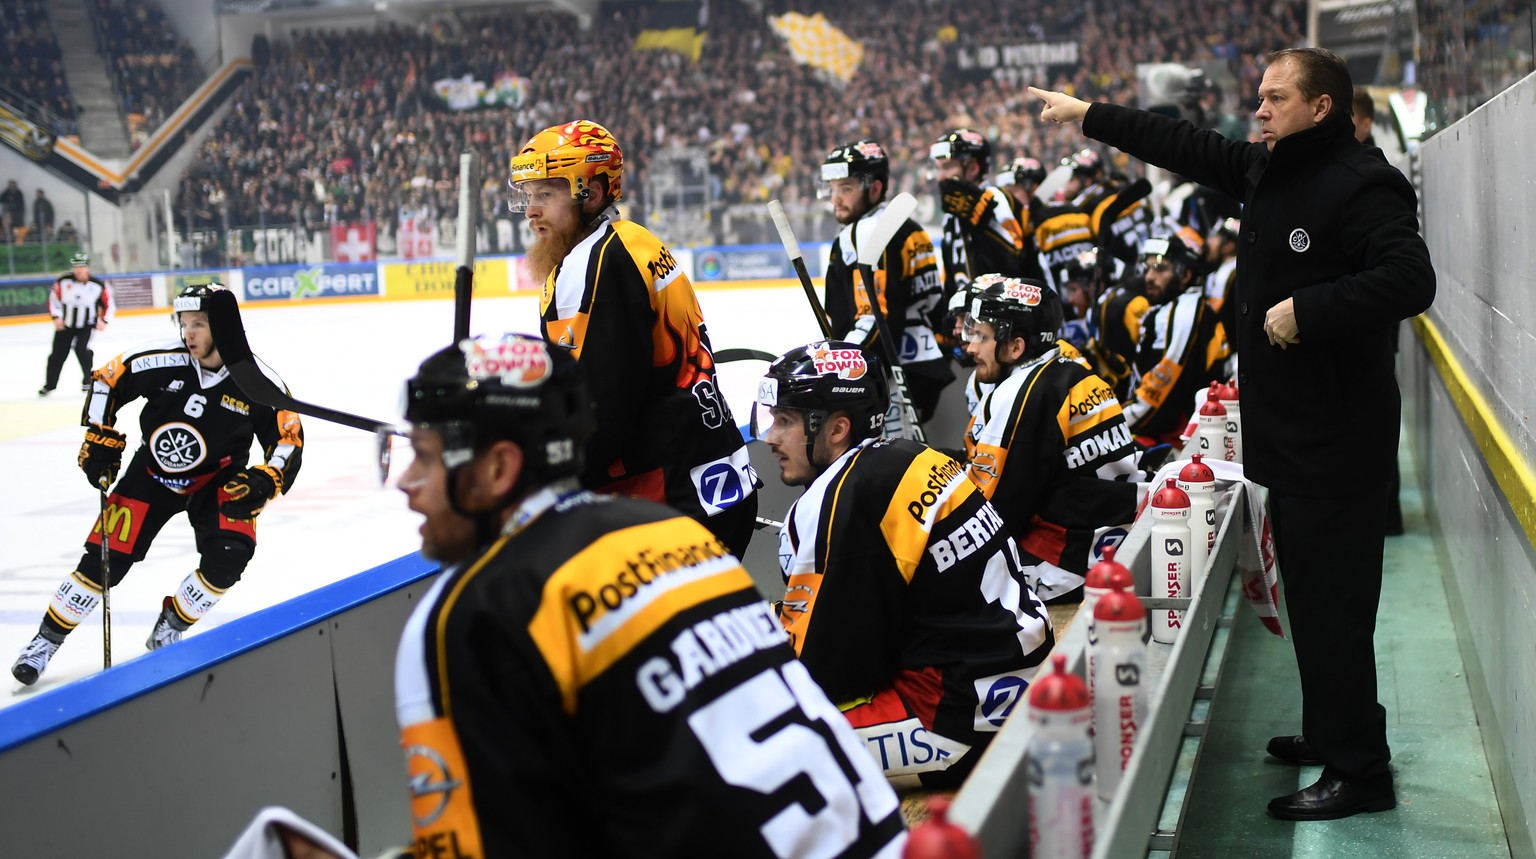 Lugano's coach Greg Ireland, left, during the sixth leg of the Playoffs quarterfinals game of National League A (NLA) Swiss Championship between Switzerland's HC Lugano and ZSC Lions, on Thursday, March 16, 2017, in the Resega Stadium in Lugano. (KEYSTONE/Ti-Press/Gabriele Putzu)